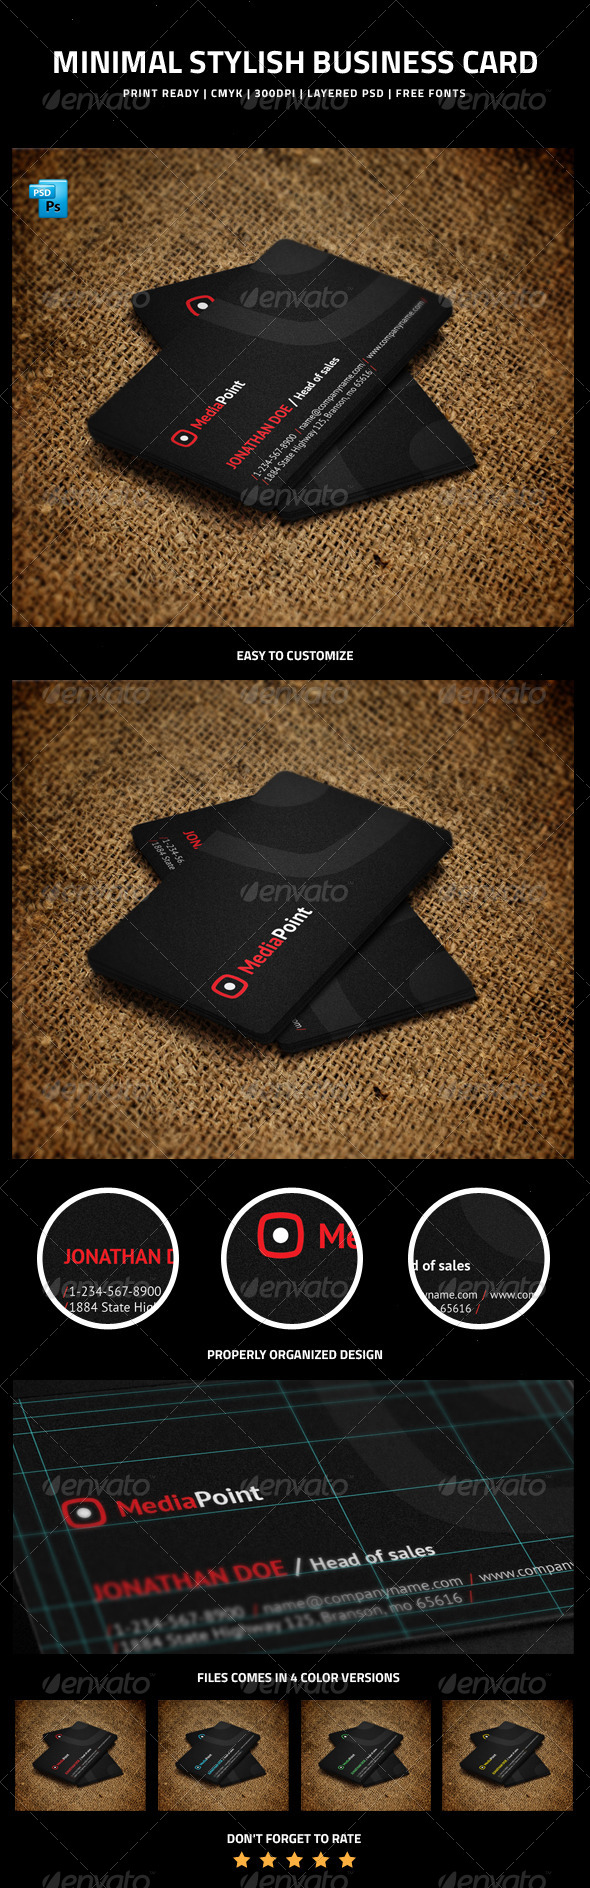 GraphicRiver Minimal Stylish Business Card 6213328